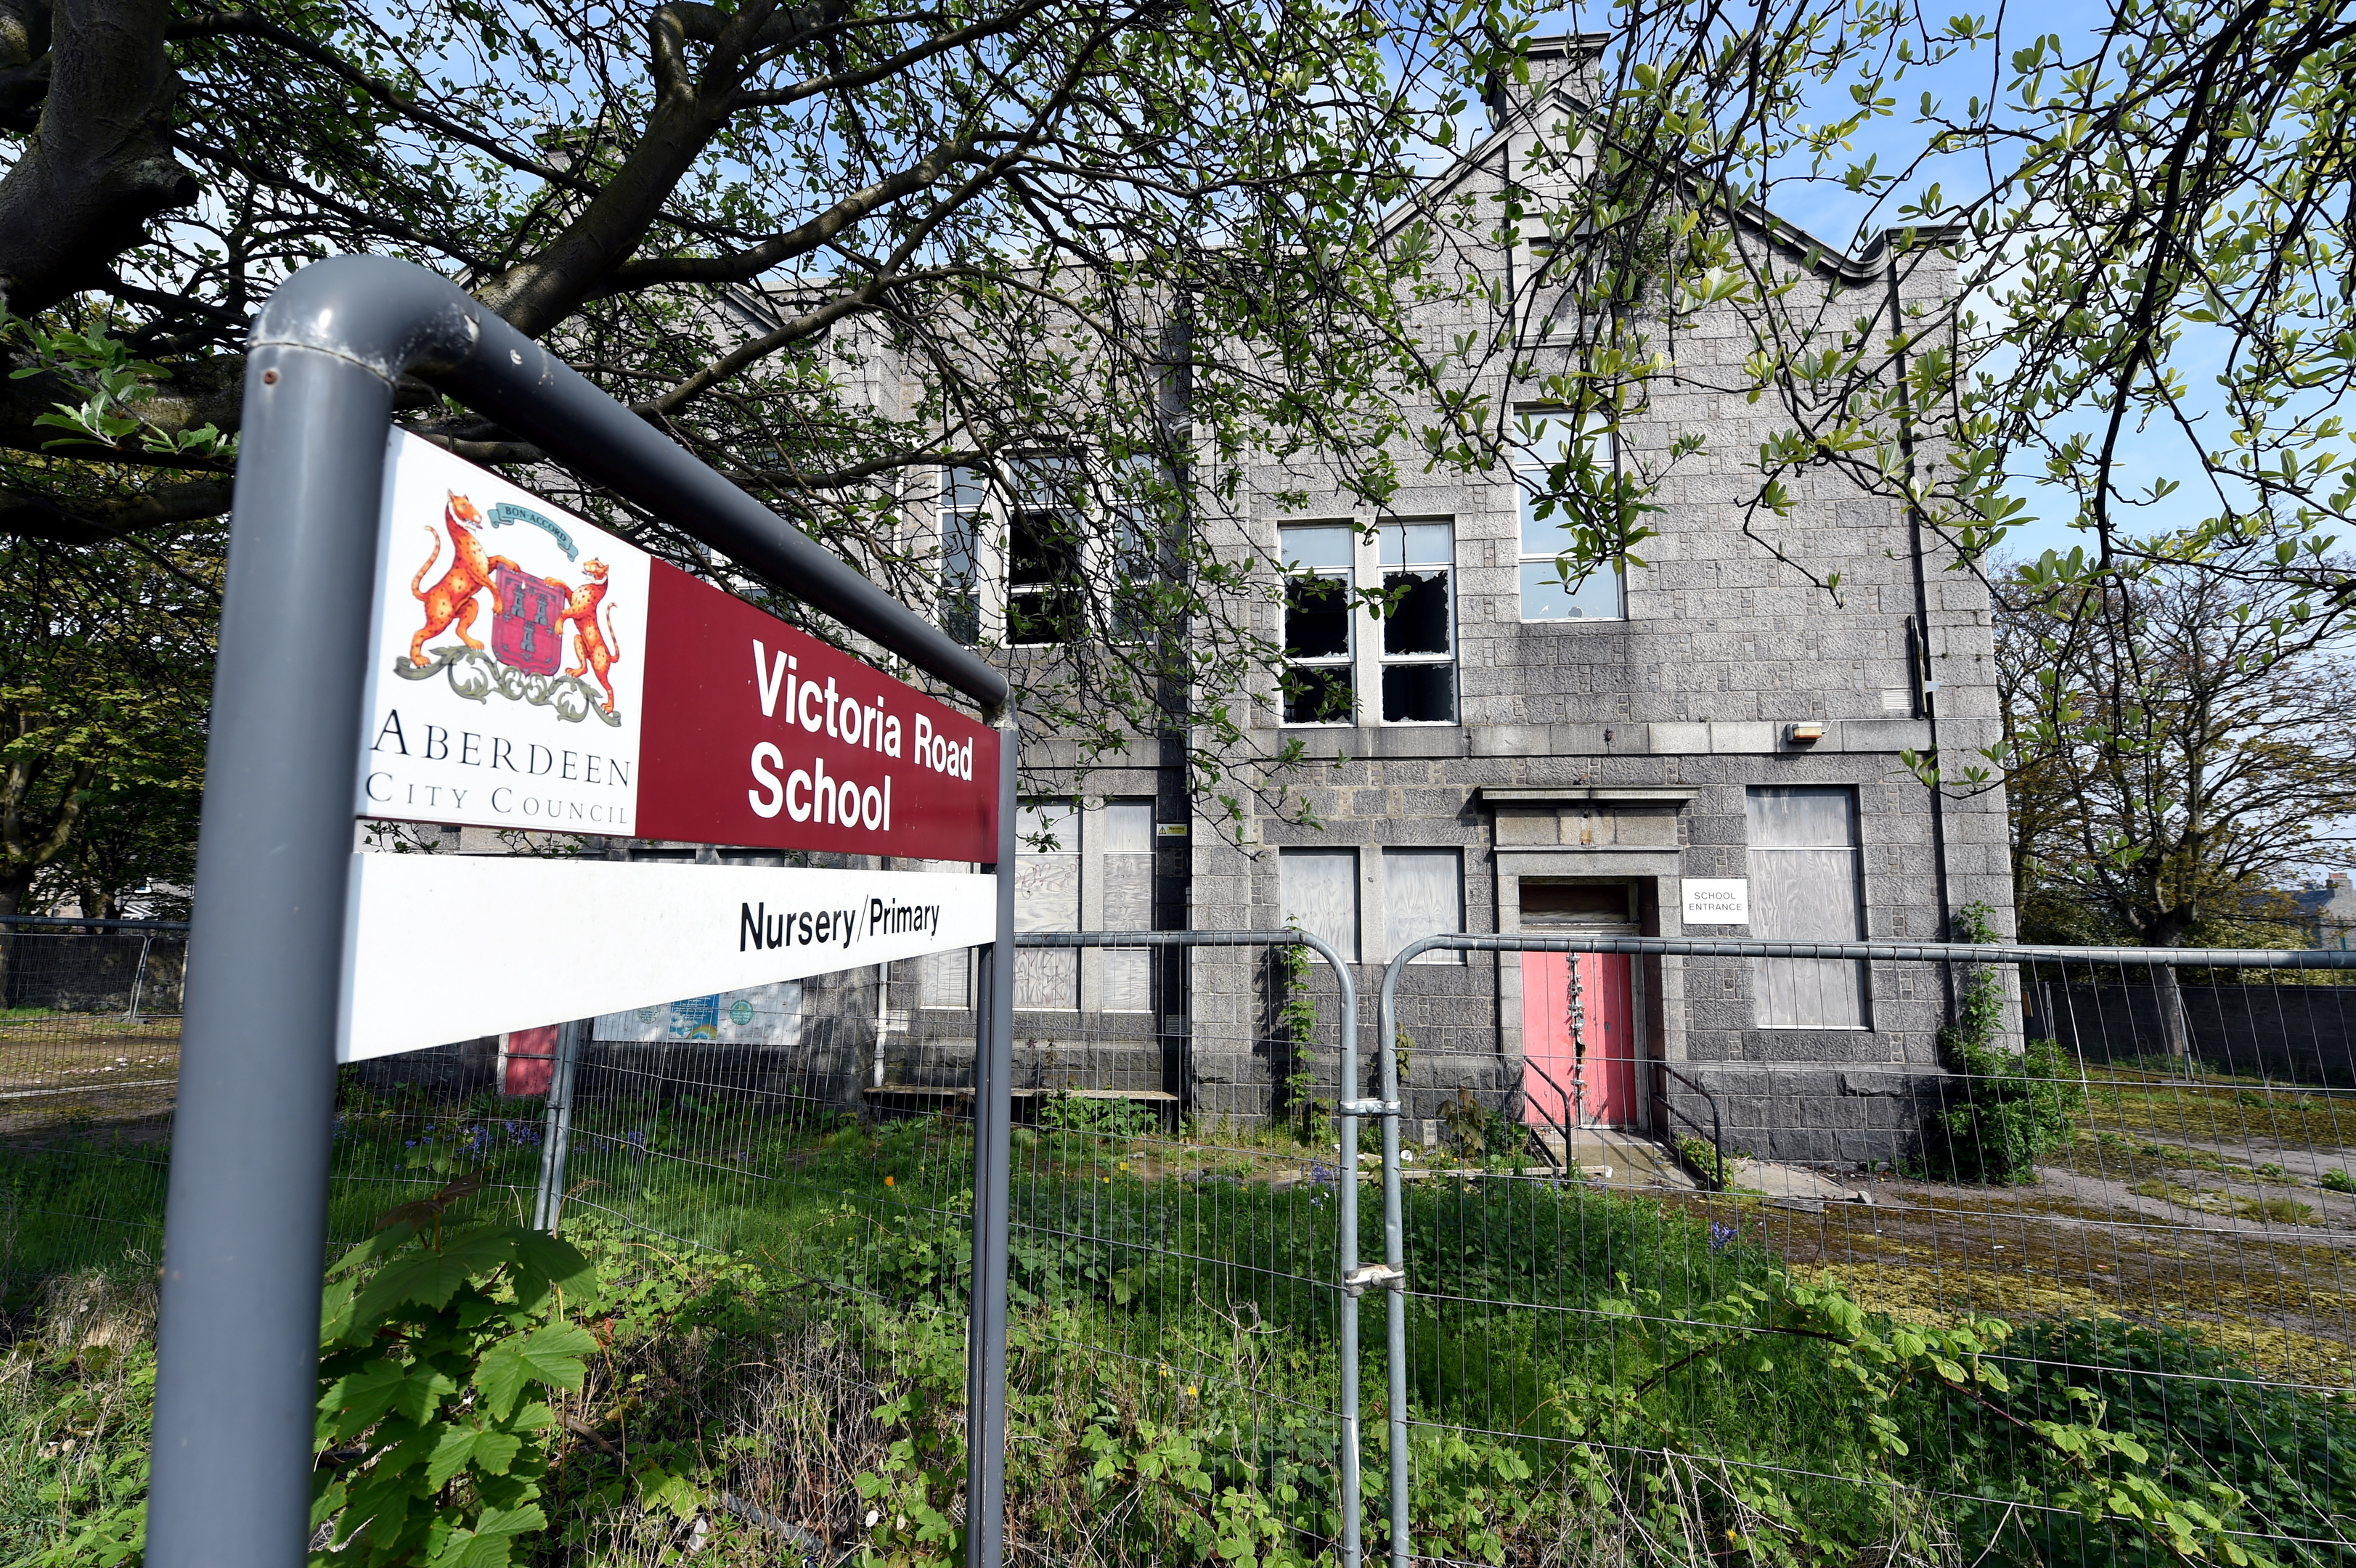 The former Victoria Road Primary School site in Torry.